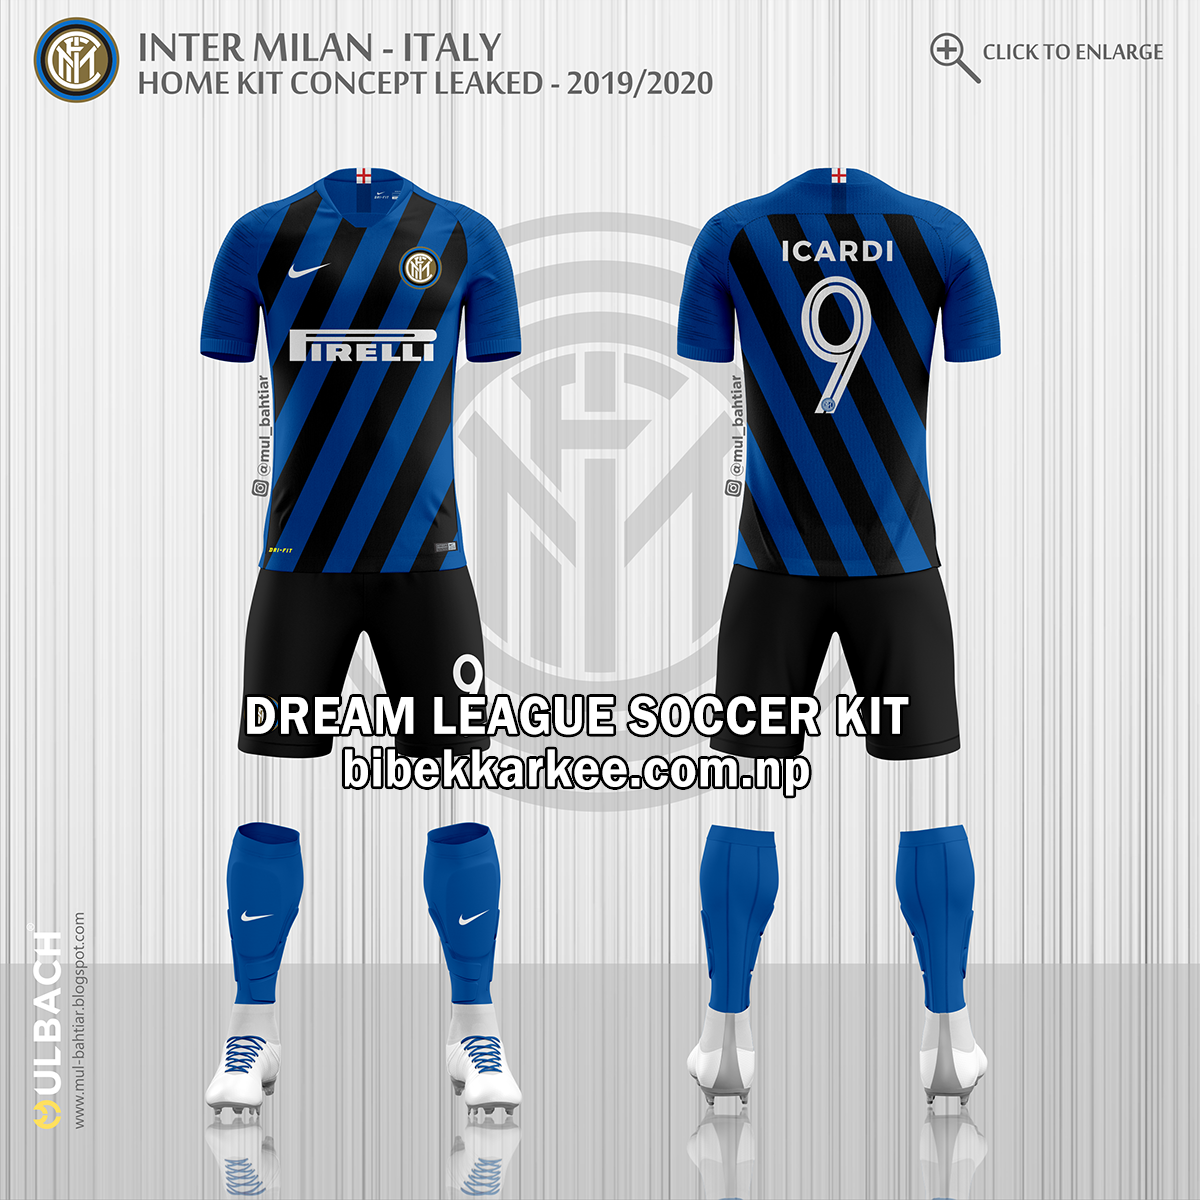 Inter Milan Dream League Soccer Kit and Logo for 2019/2020- Serie A